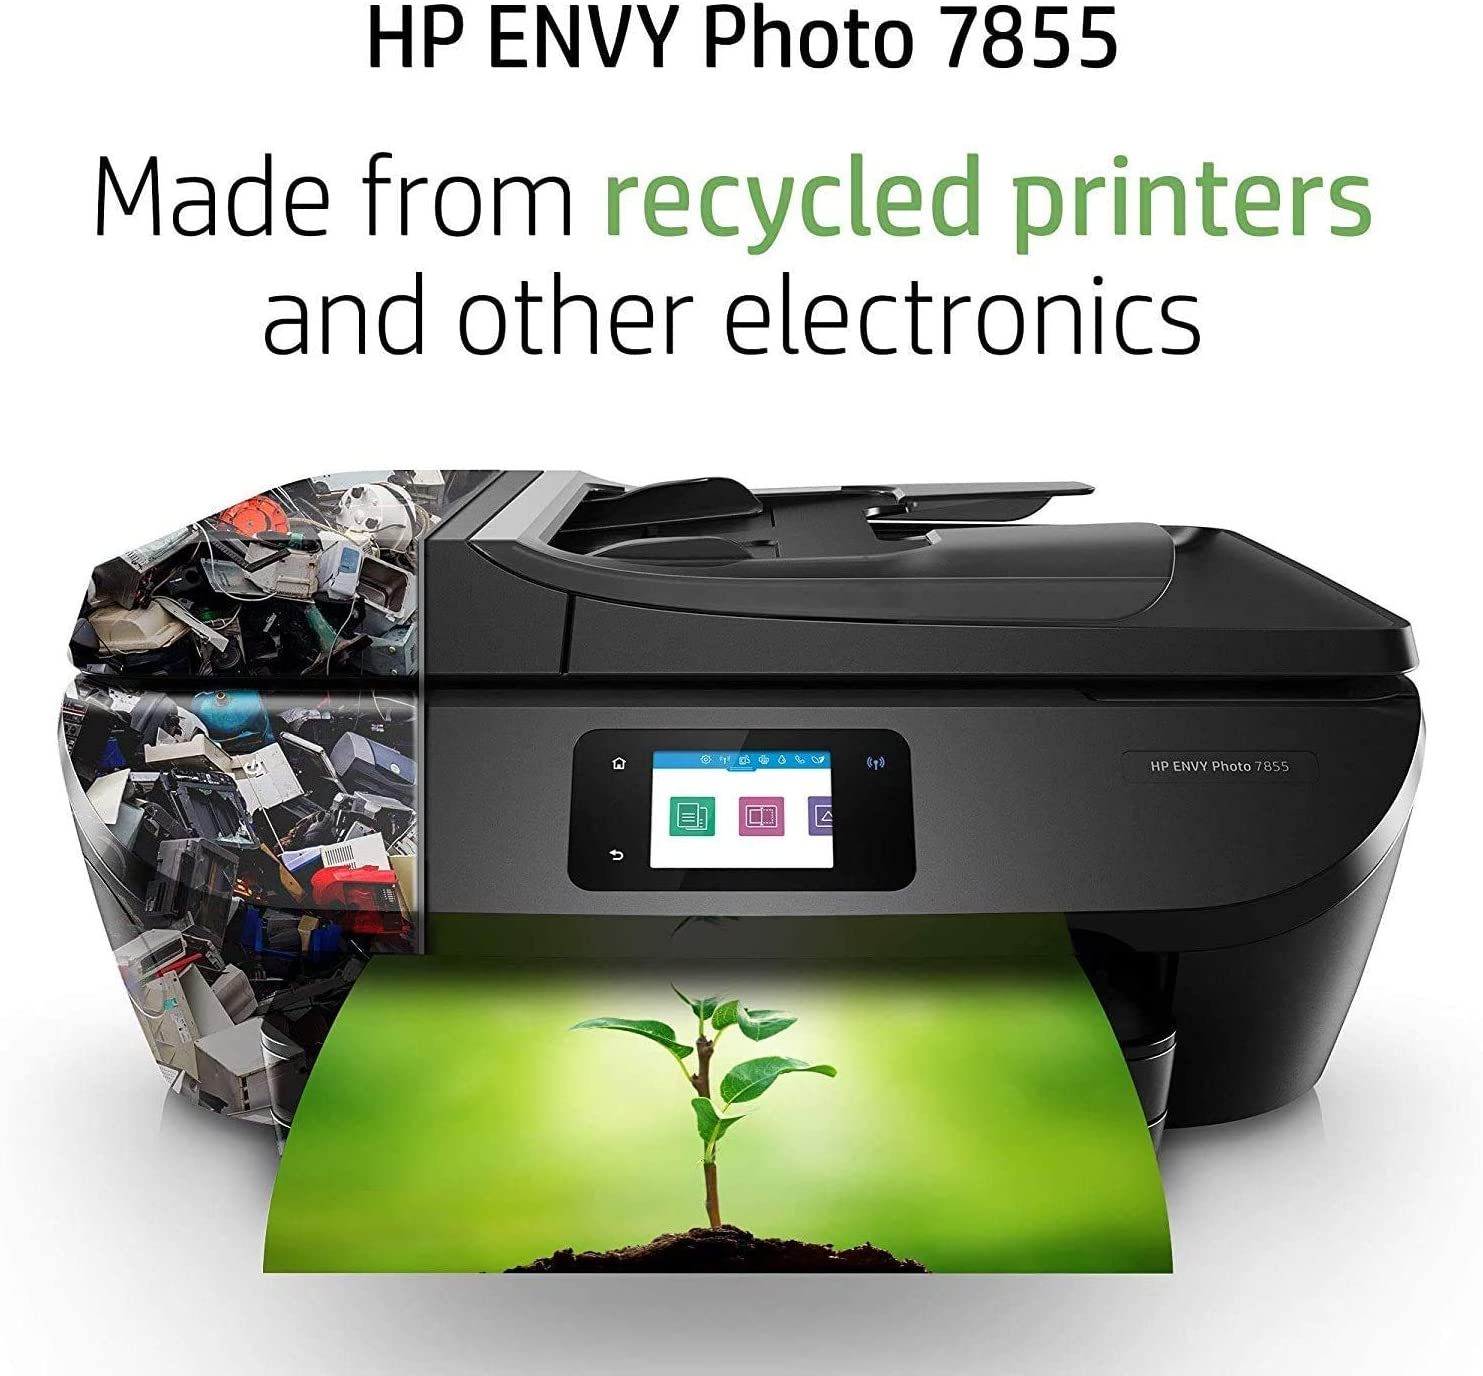 HP ENVY Photo 7855 All in One Photo Printer with Wireless Printing, HP Instant Ink ready, Works with Alexa (K7R96A)